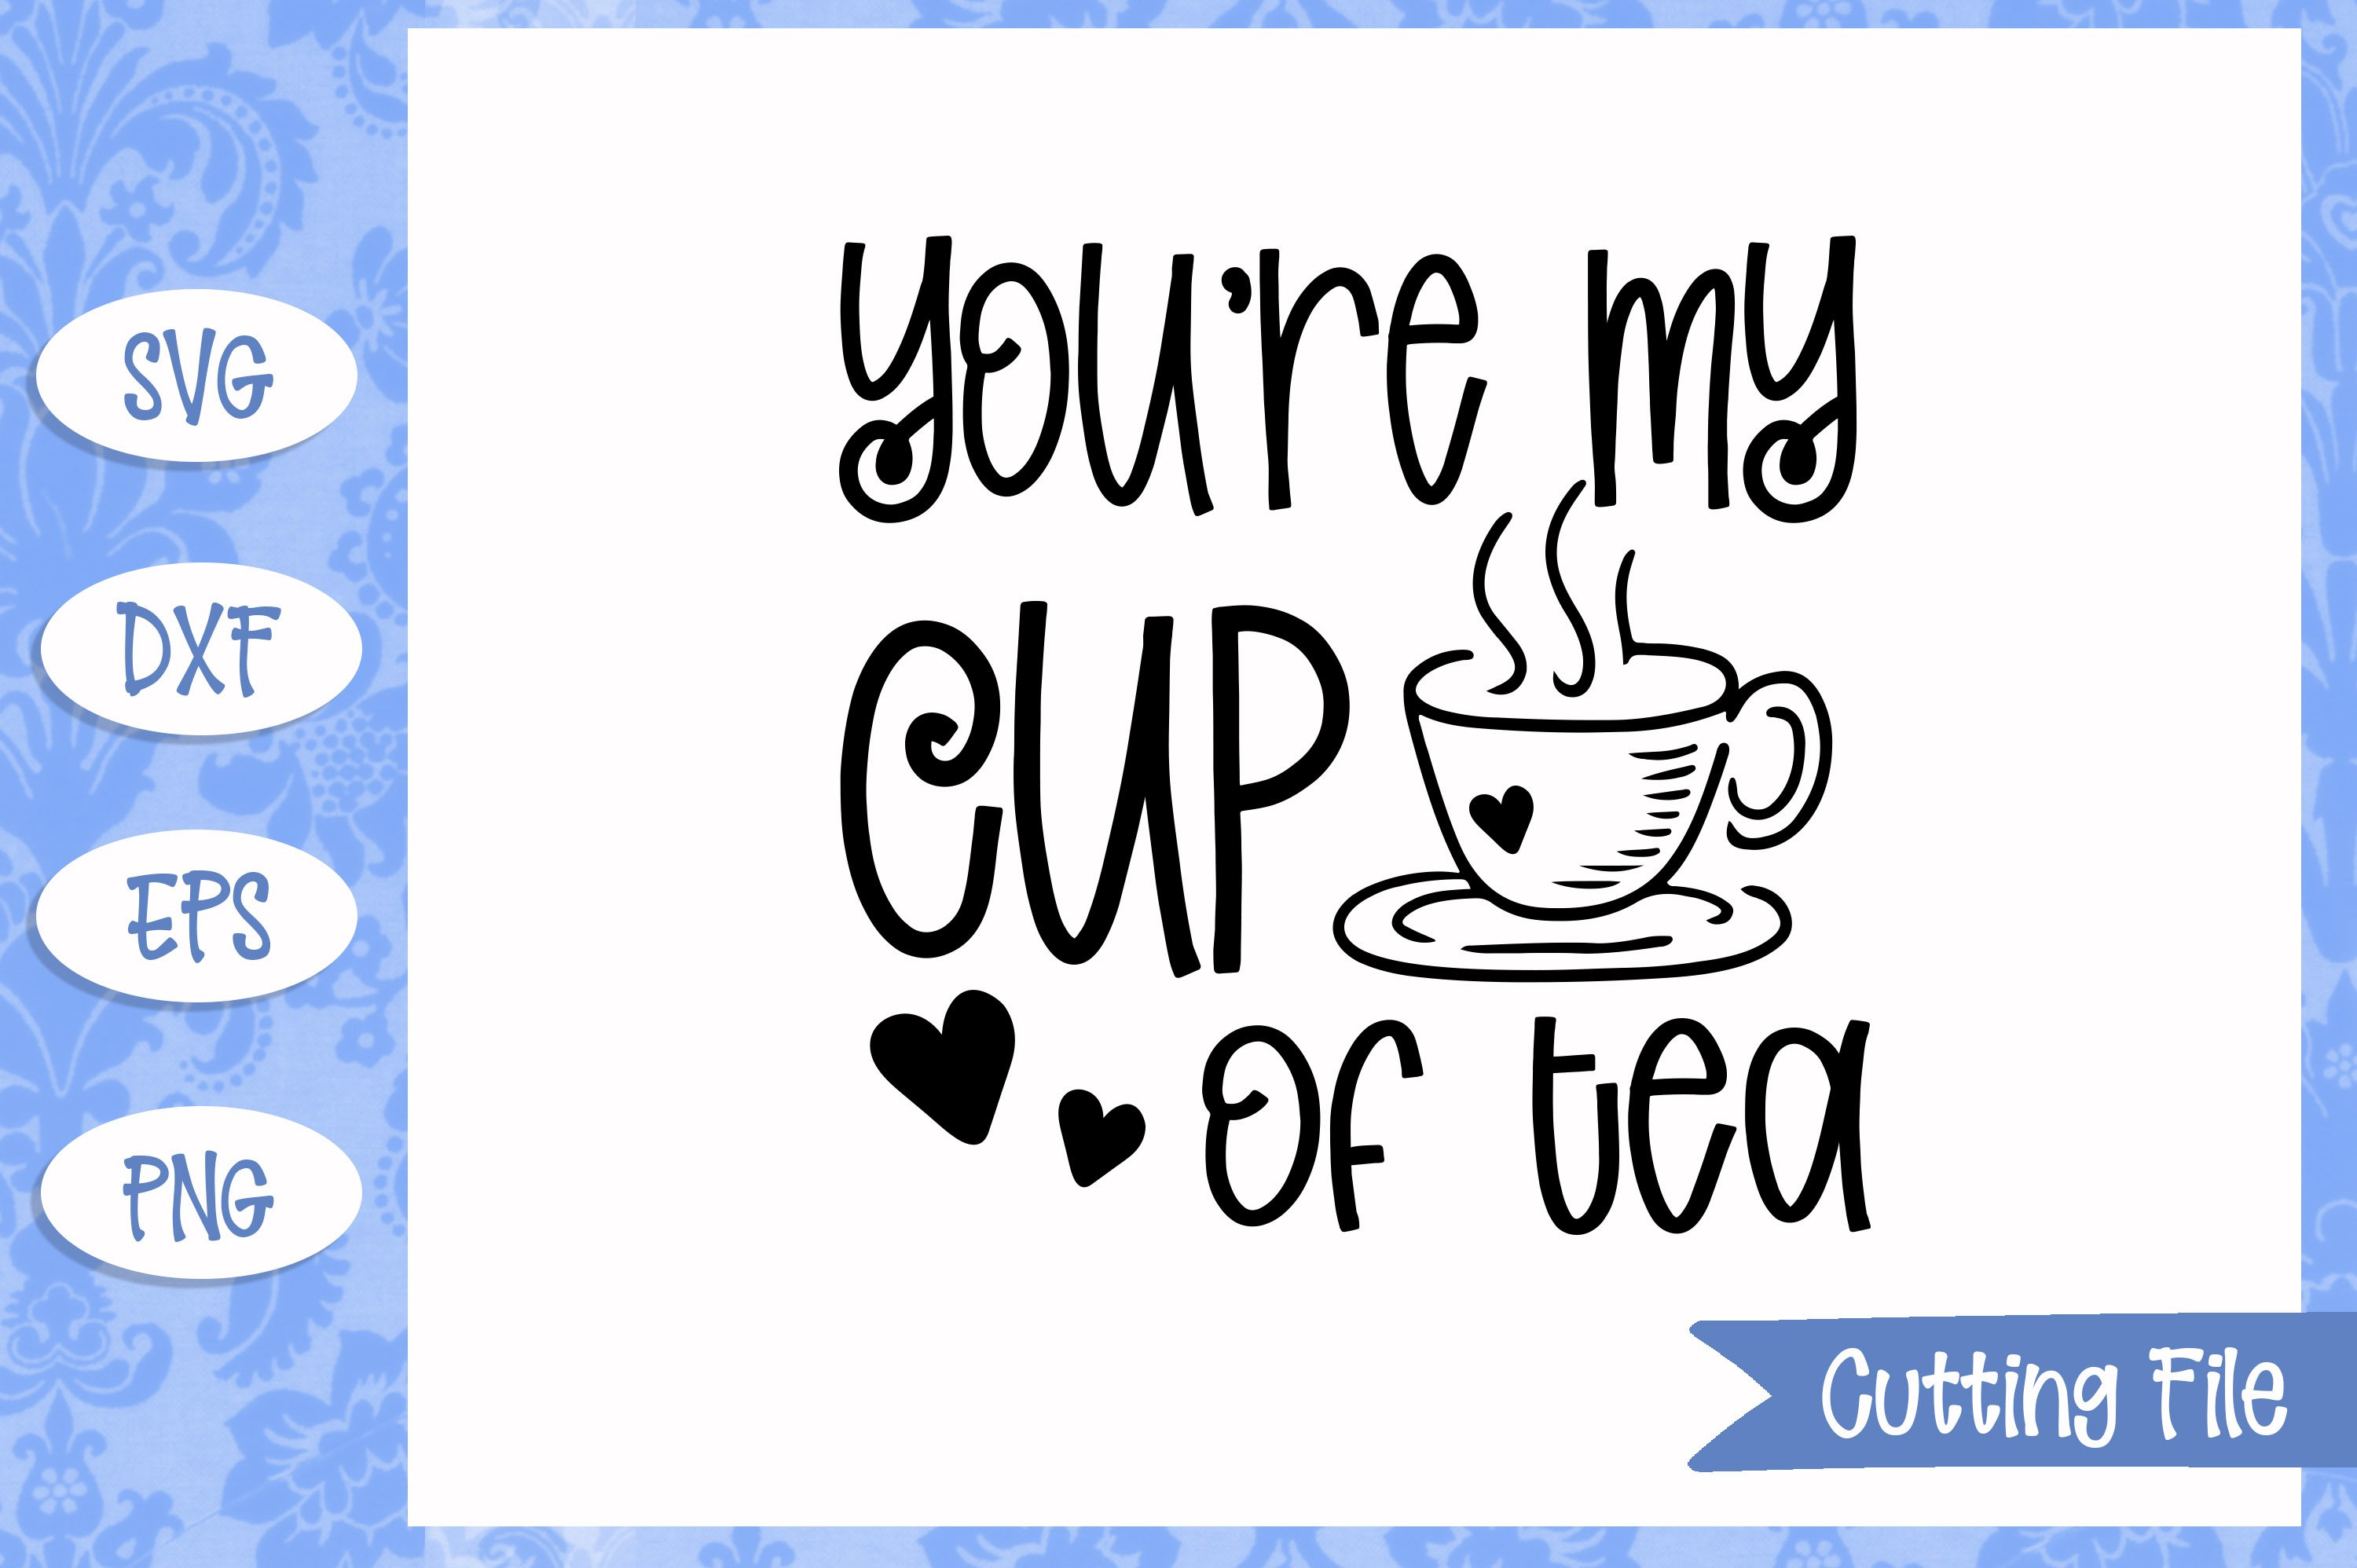 You're my cup of tea SVG File example image 1